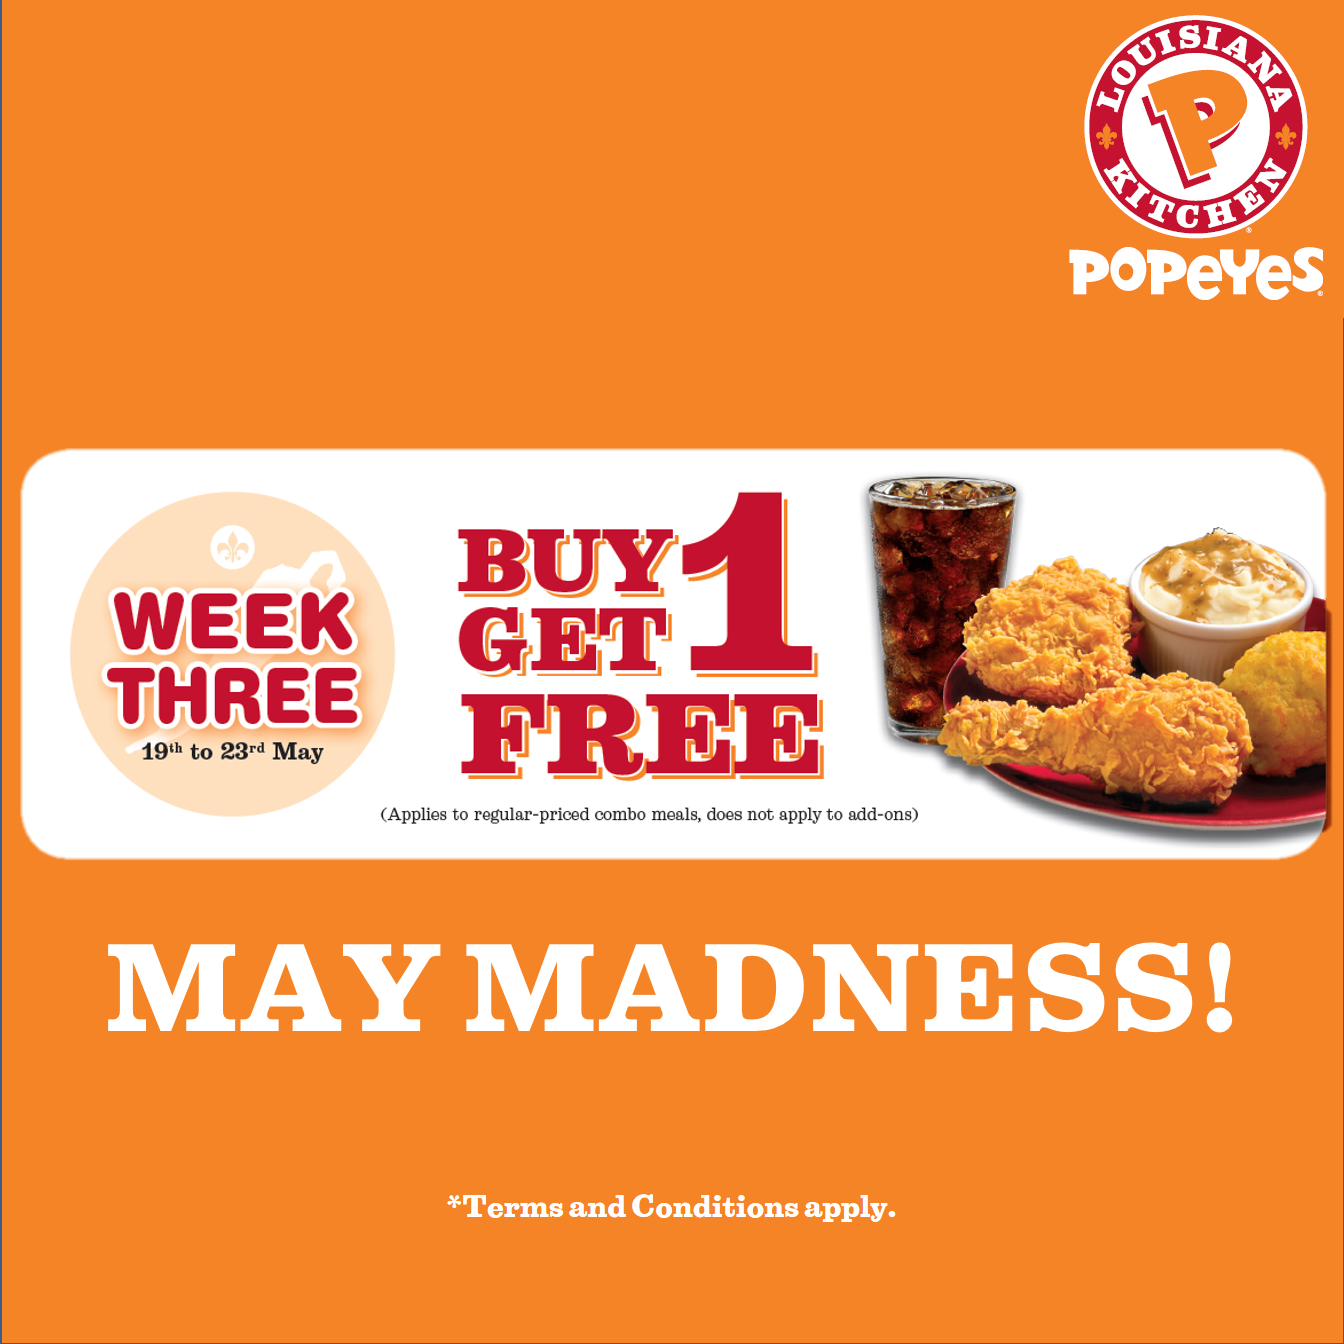 Popeyes Buy 1 Get 1 Free May Madness Offer On Combo Meals